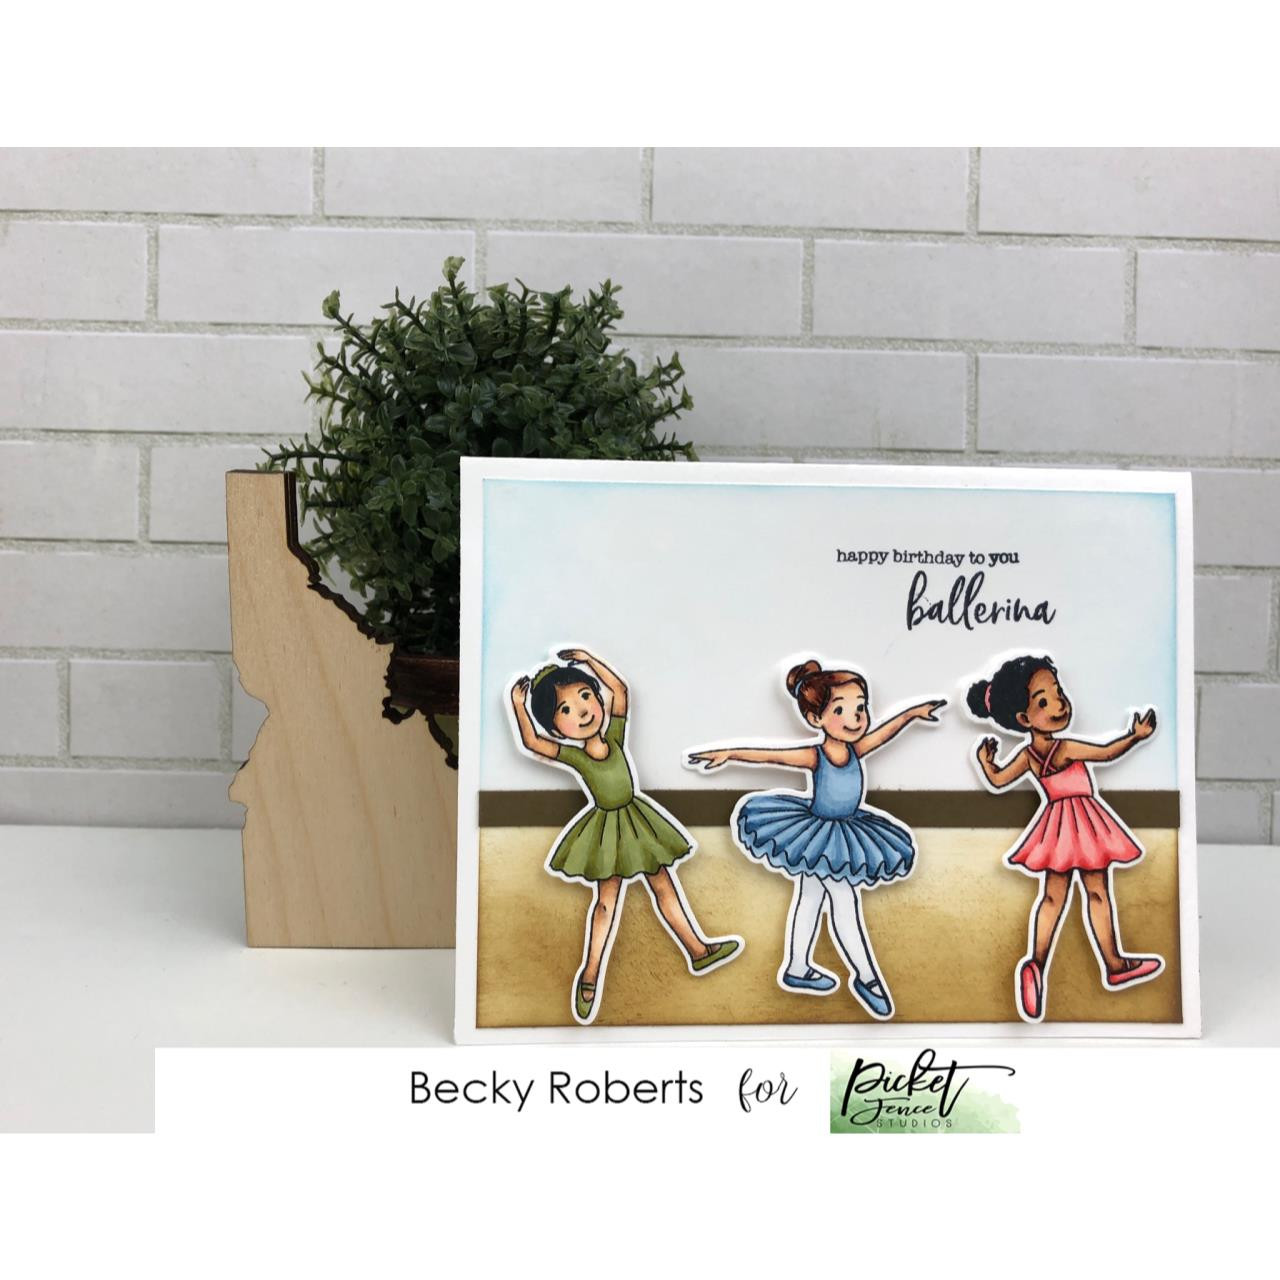 Ballerina Friends, Picket Fence Studios Clear Stamps - 745557997419